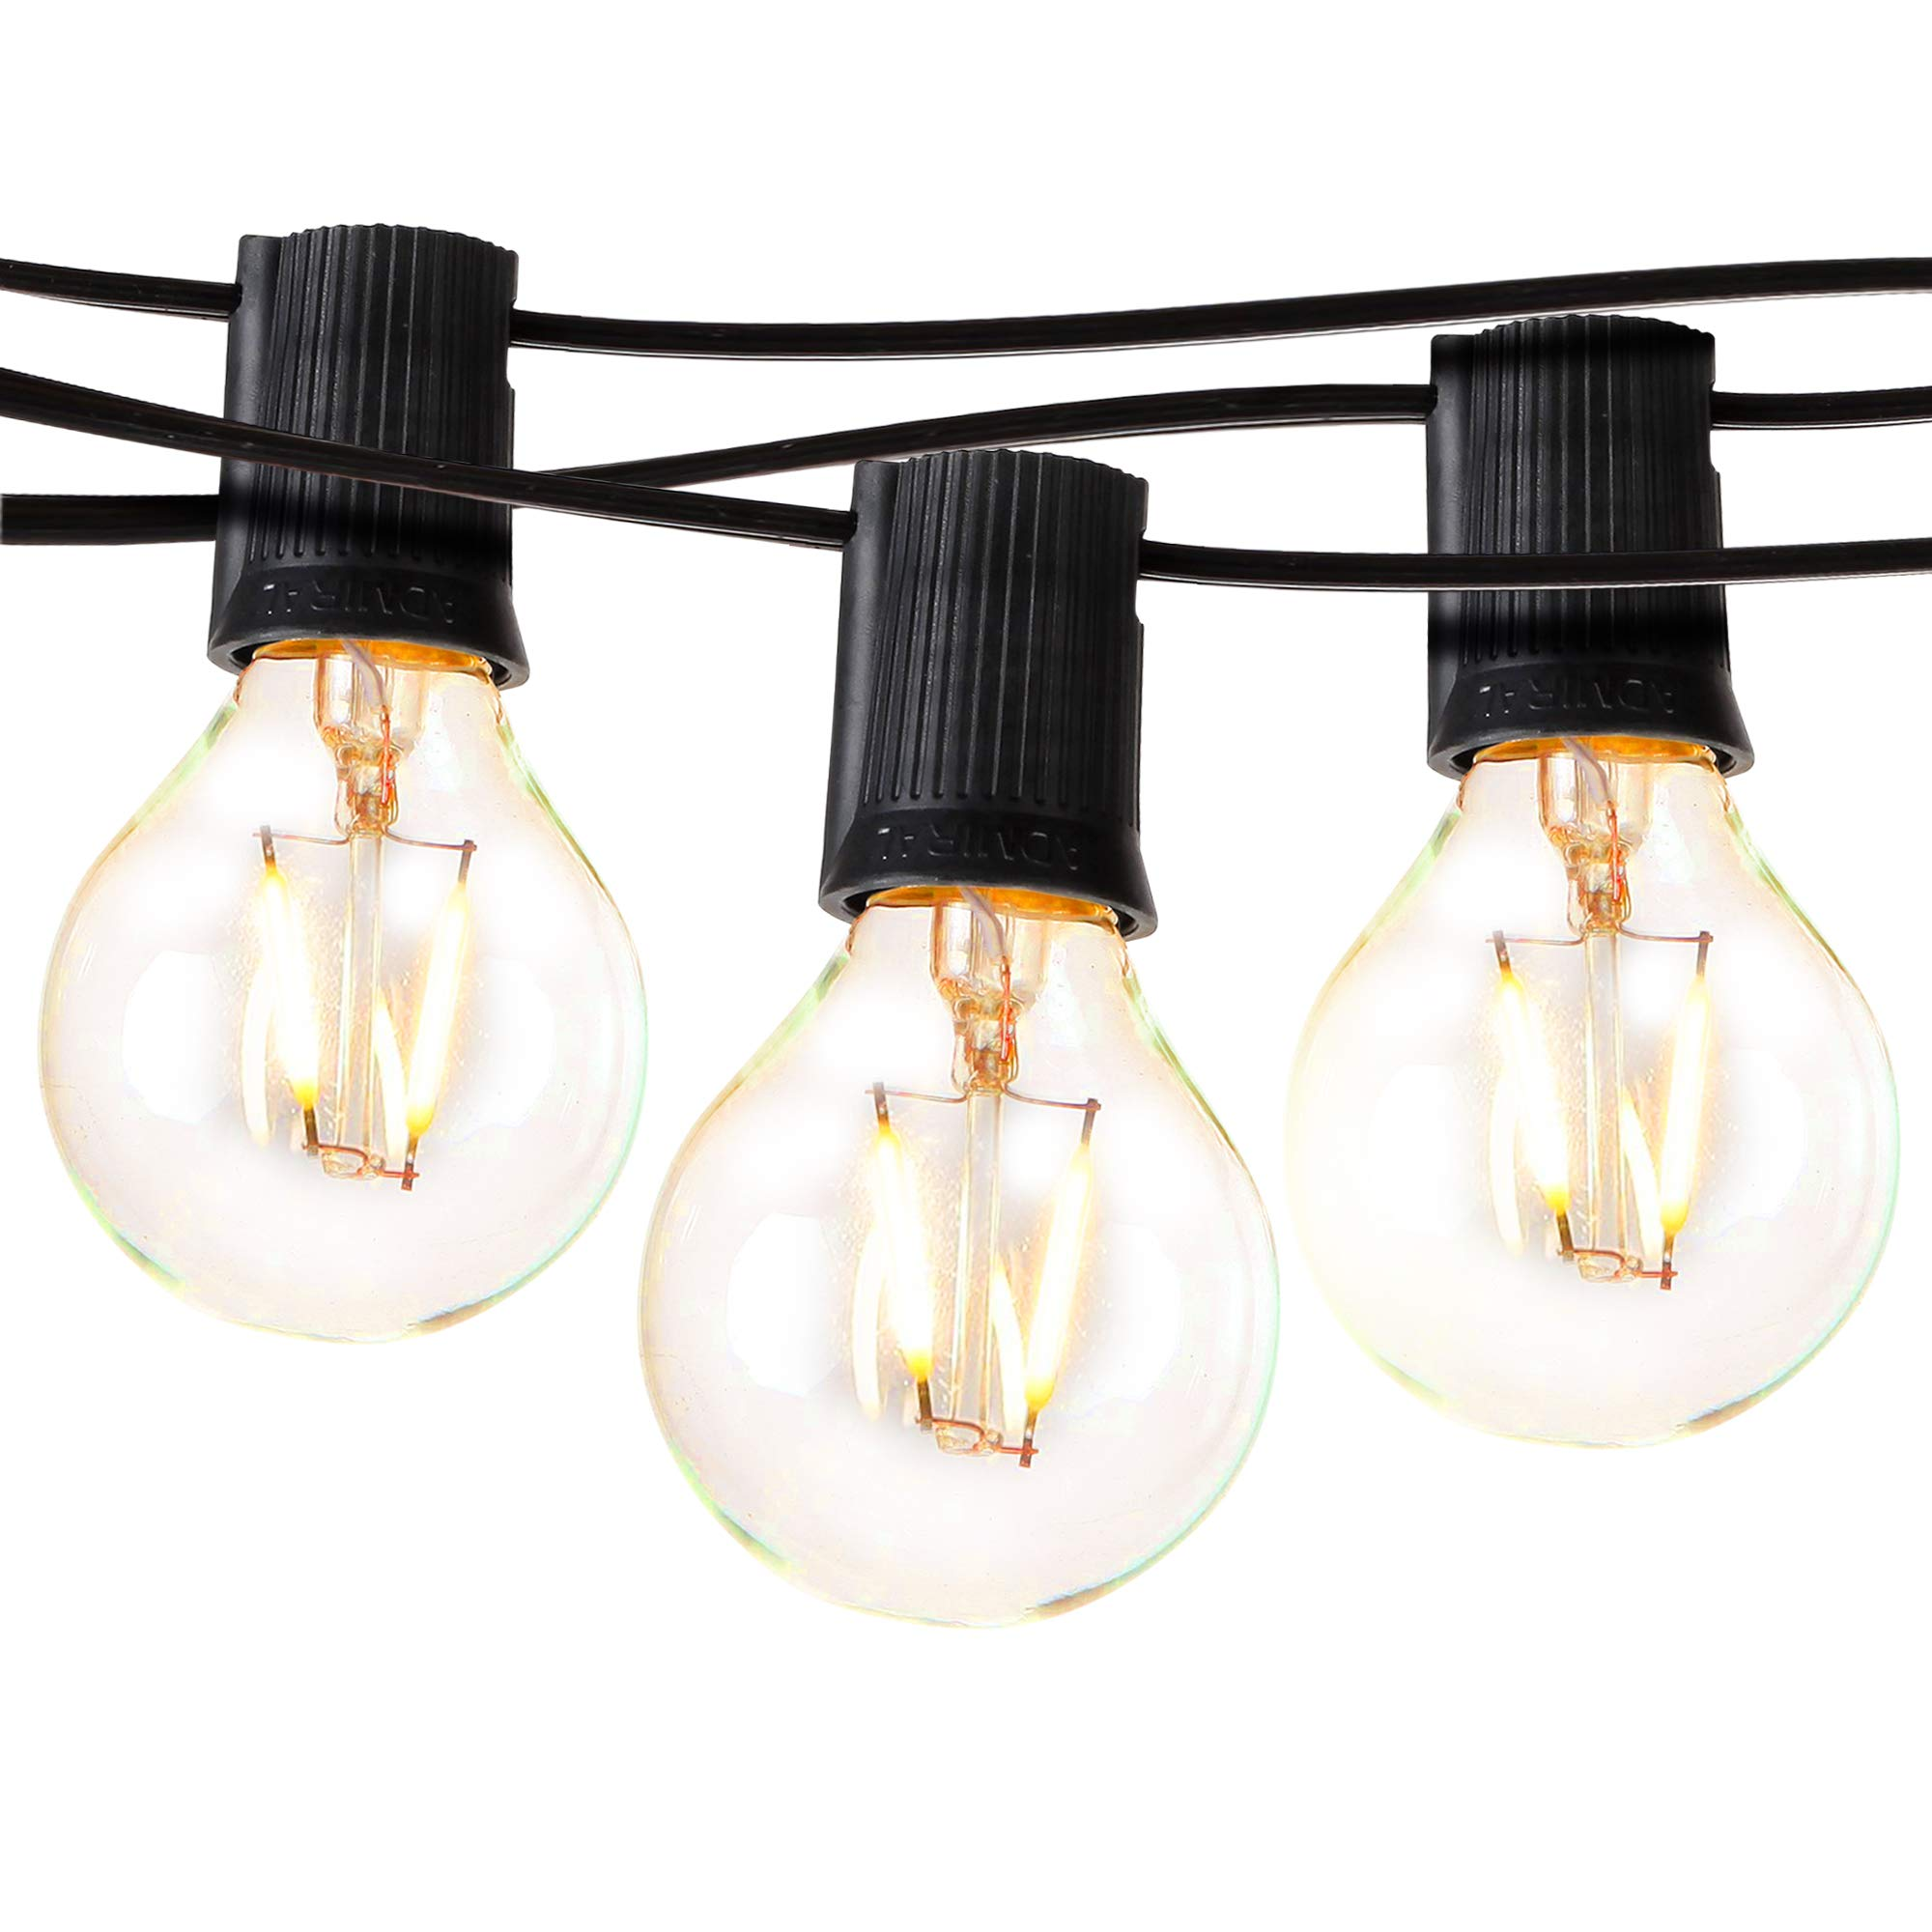 Brightech Ambience Pro - LED Outdoor Globe String Lights - Hanging 1W Vintage Edison Bulbs - Waterproof Patio Lights Create Cafe Ambience On Your Balcony - 26 Ft - Black by Brightech